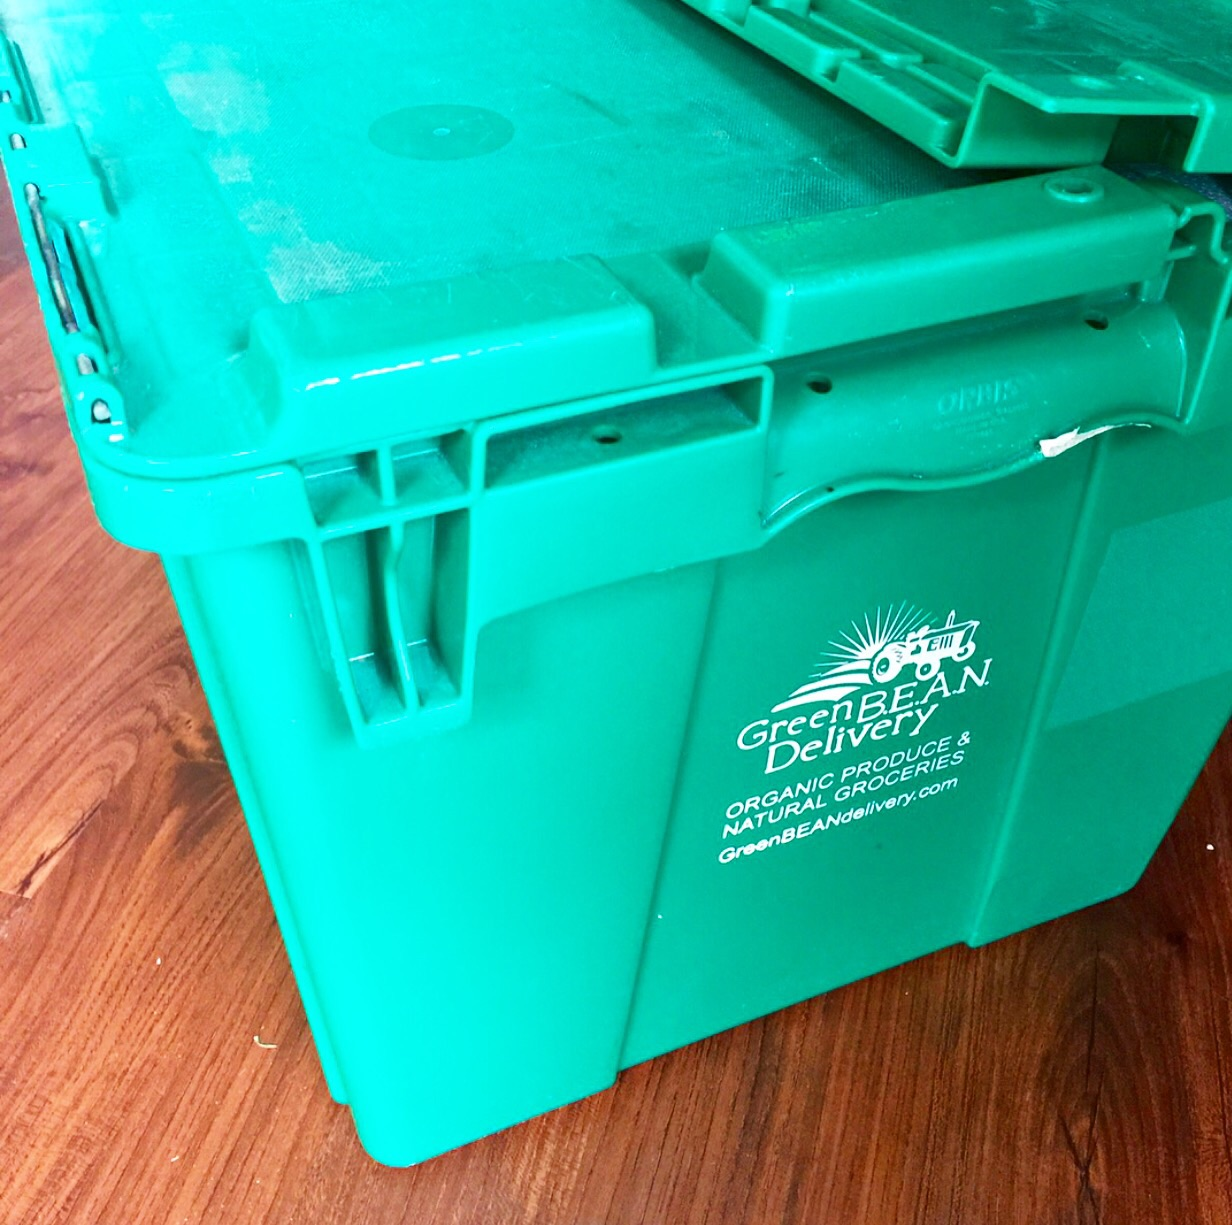 This green bin was waiting at my doorstep!